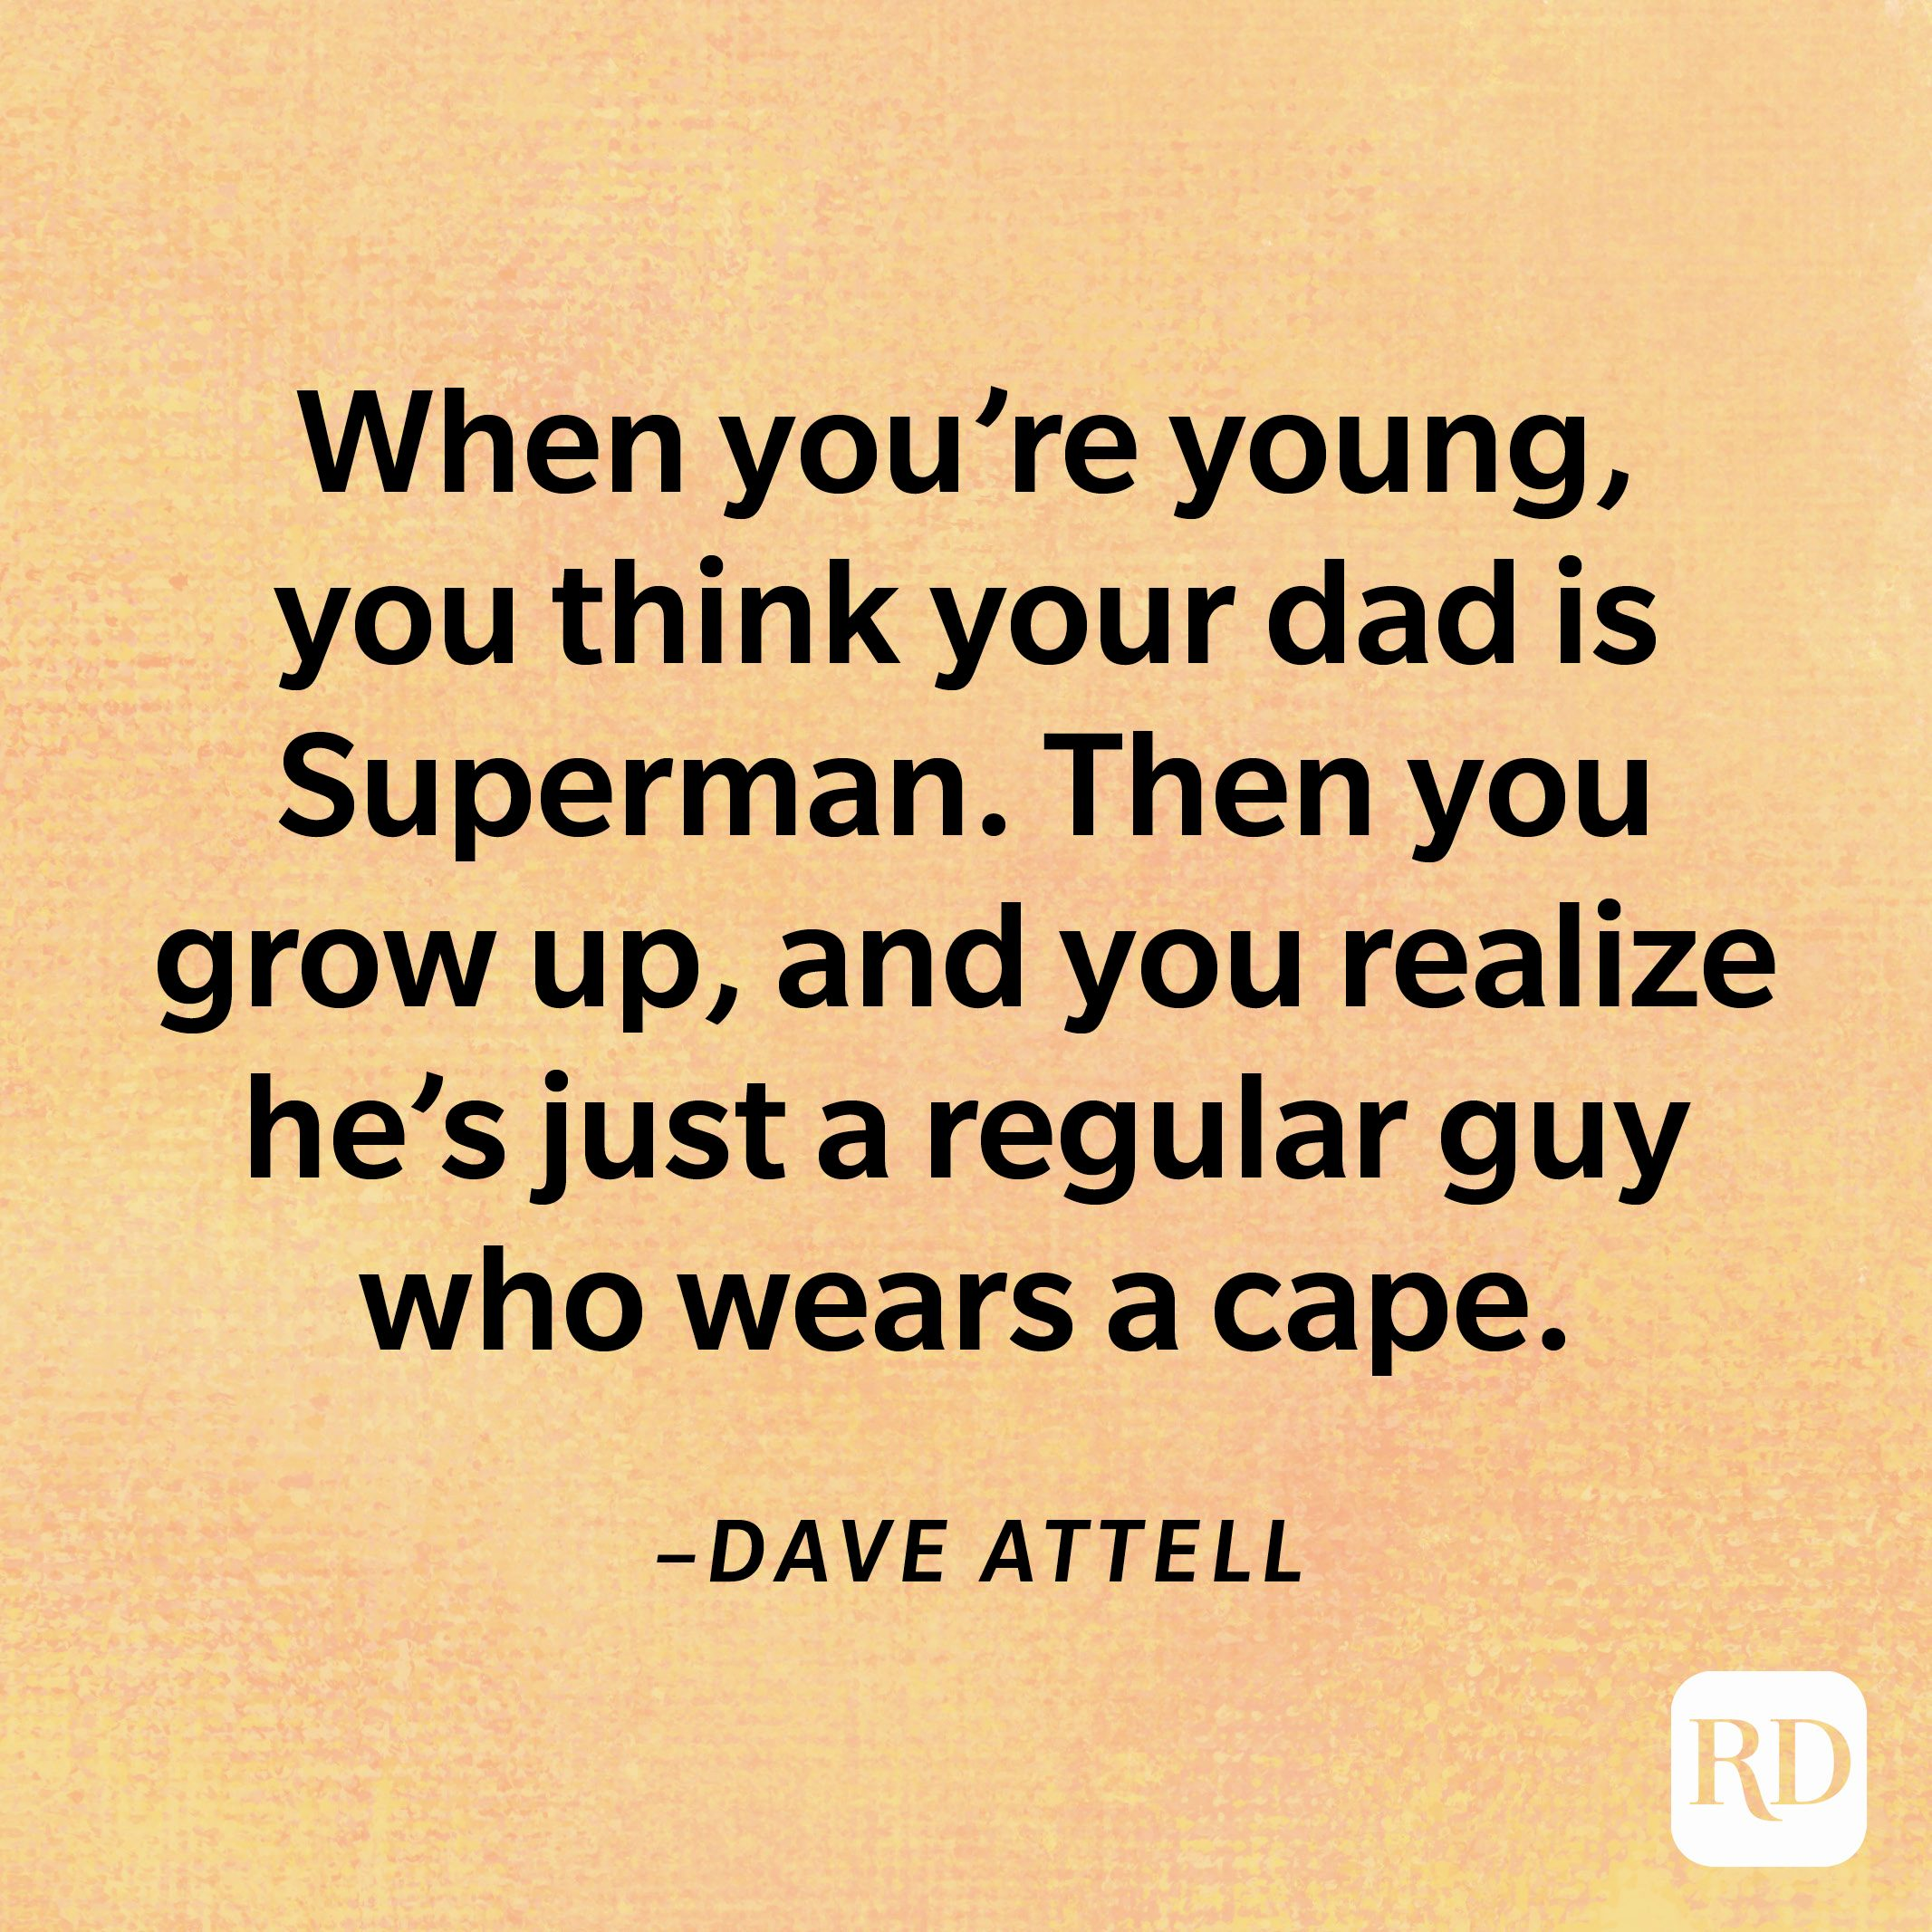 """""""When you're young, you think your dad is Superman. Then you grow up, and you realize he's just a regular guy who wears a cape.""""—Dave Attell"""